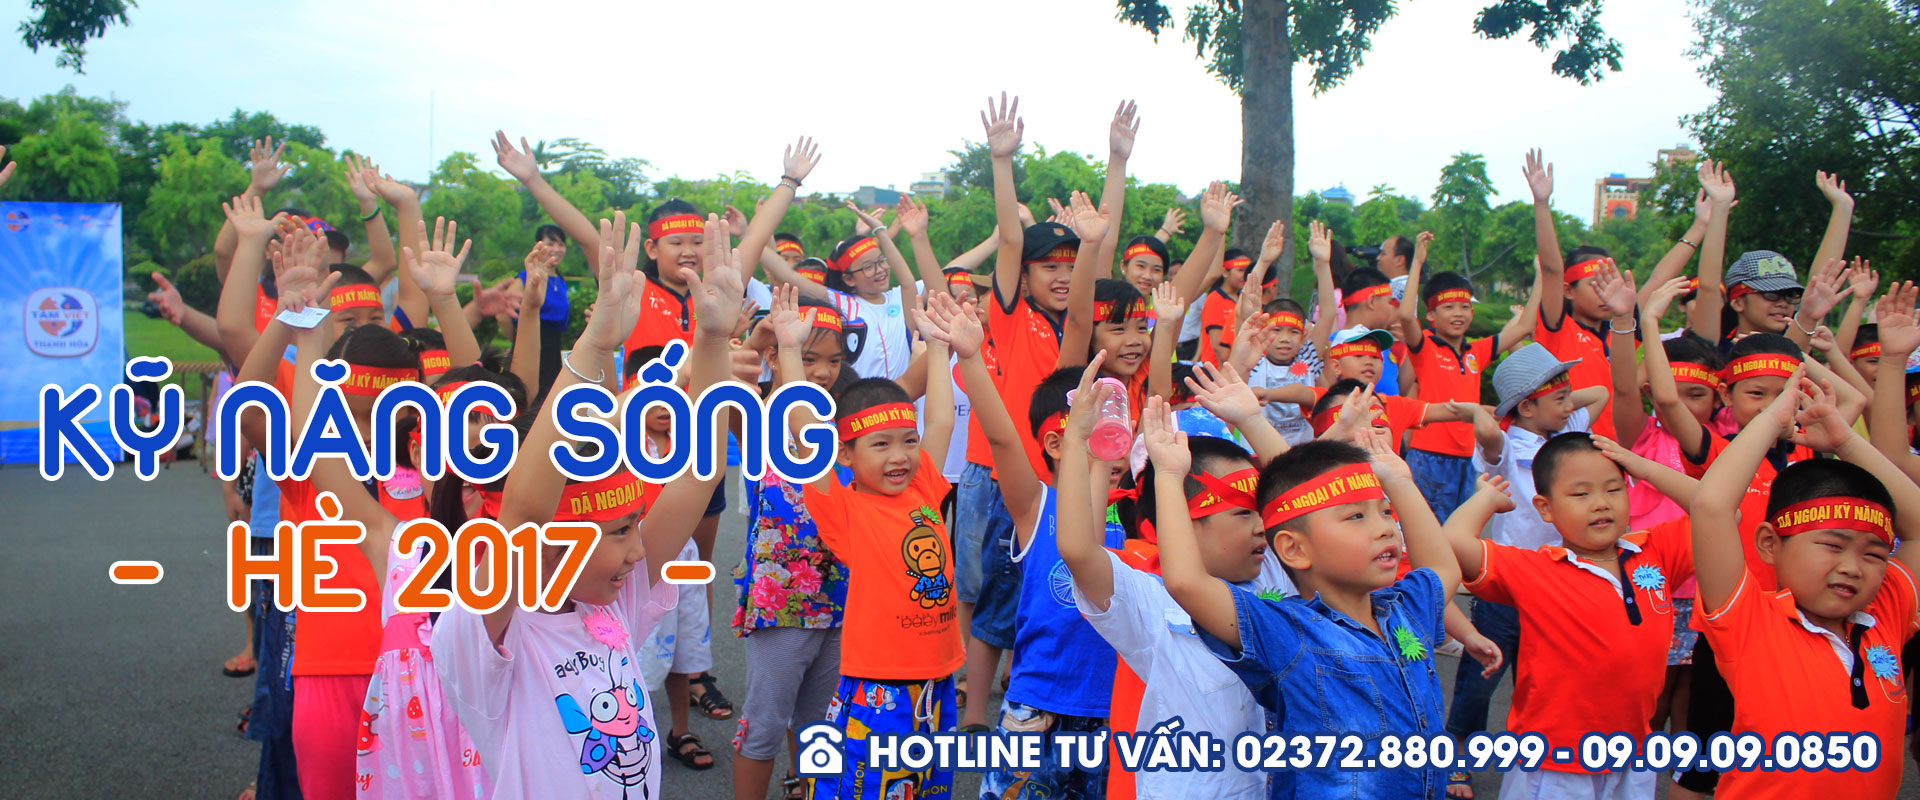 ky-nang-song-he-2017